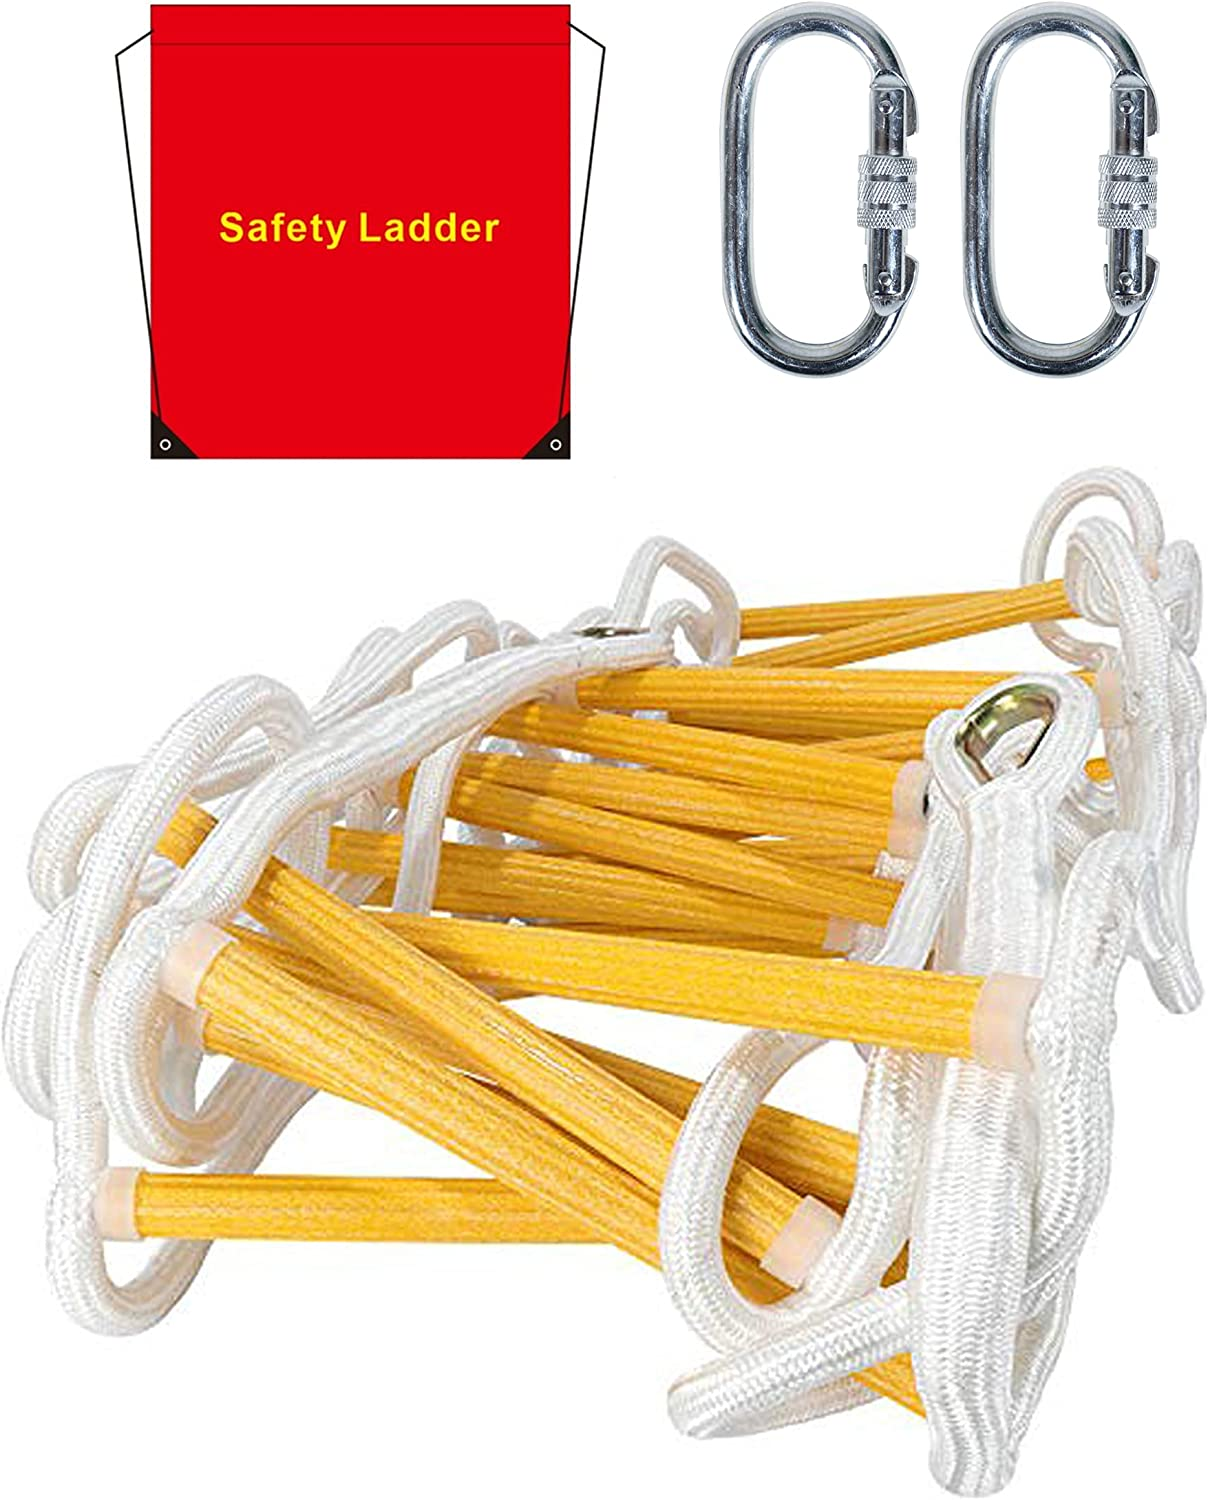 Emergency Fire Escape Ladder Flame Resistant Safety Rope Ladder with Hooks Fast to Deploy & Easy to Use Compact & Easy to Store Withstand Weight up to 900 pounds (13ft